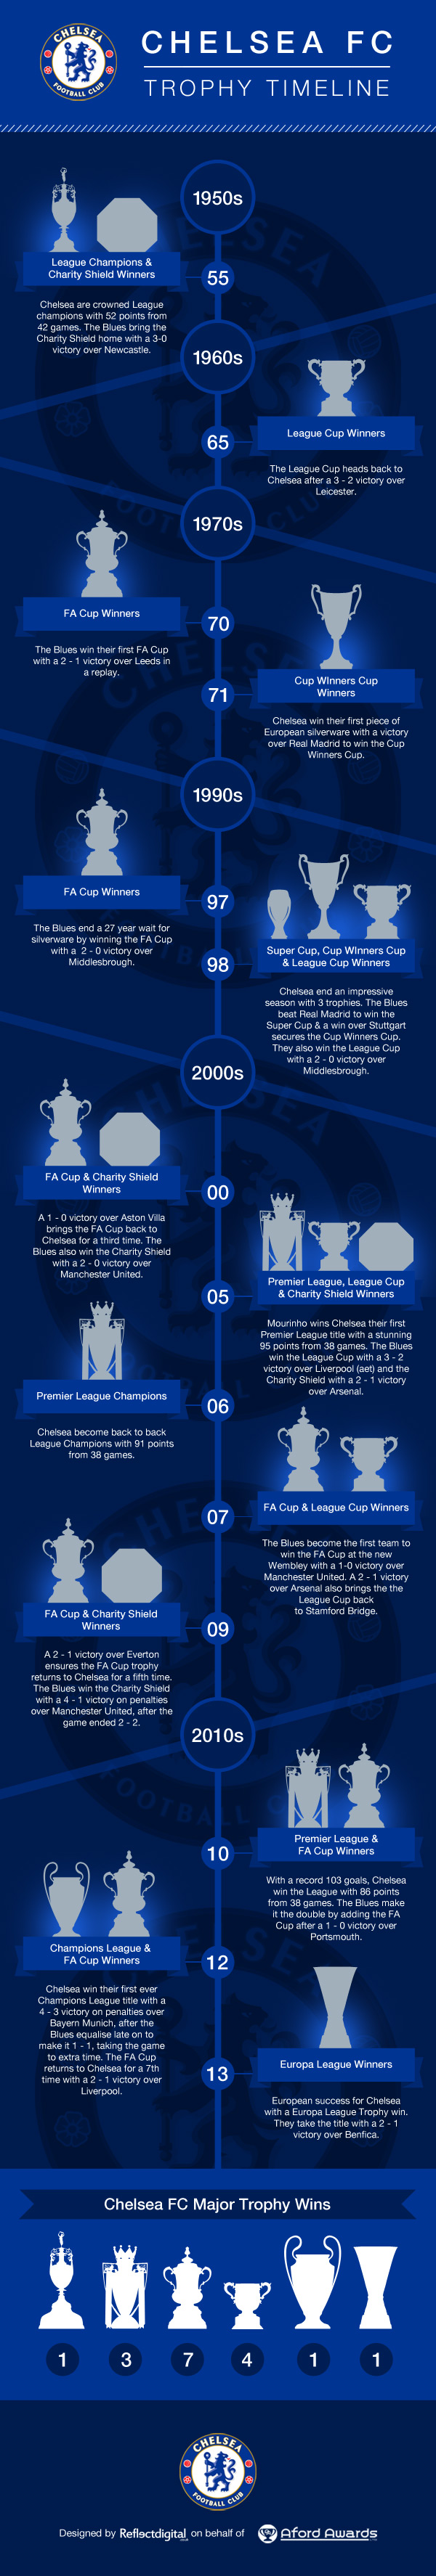 chelsea-fc-football-club